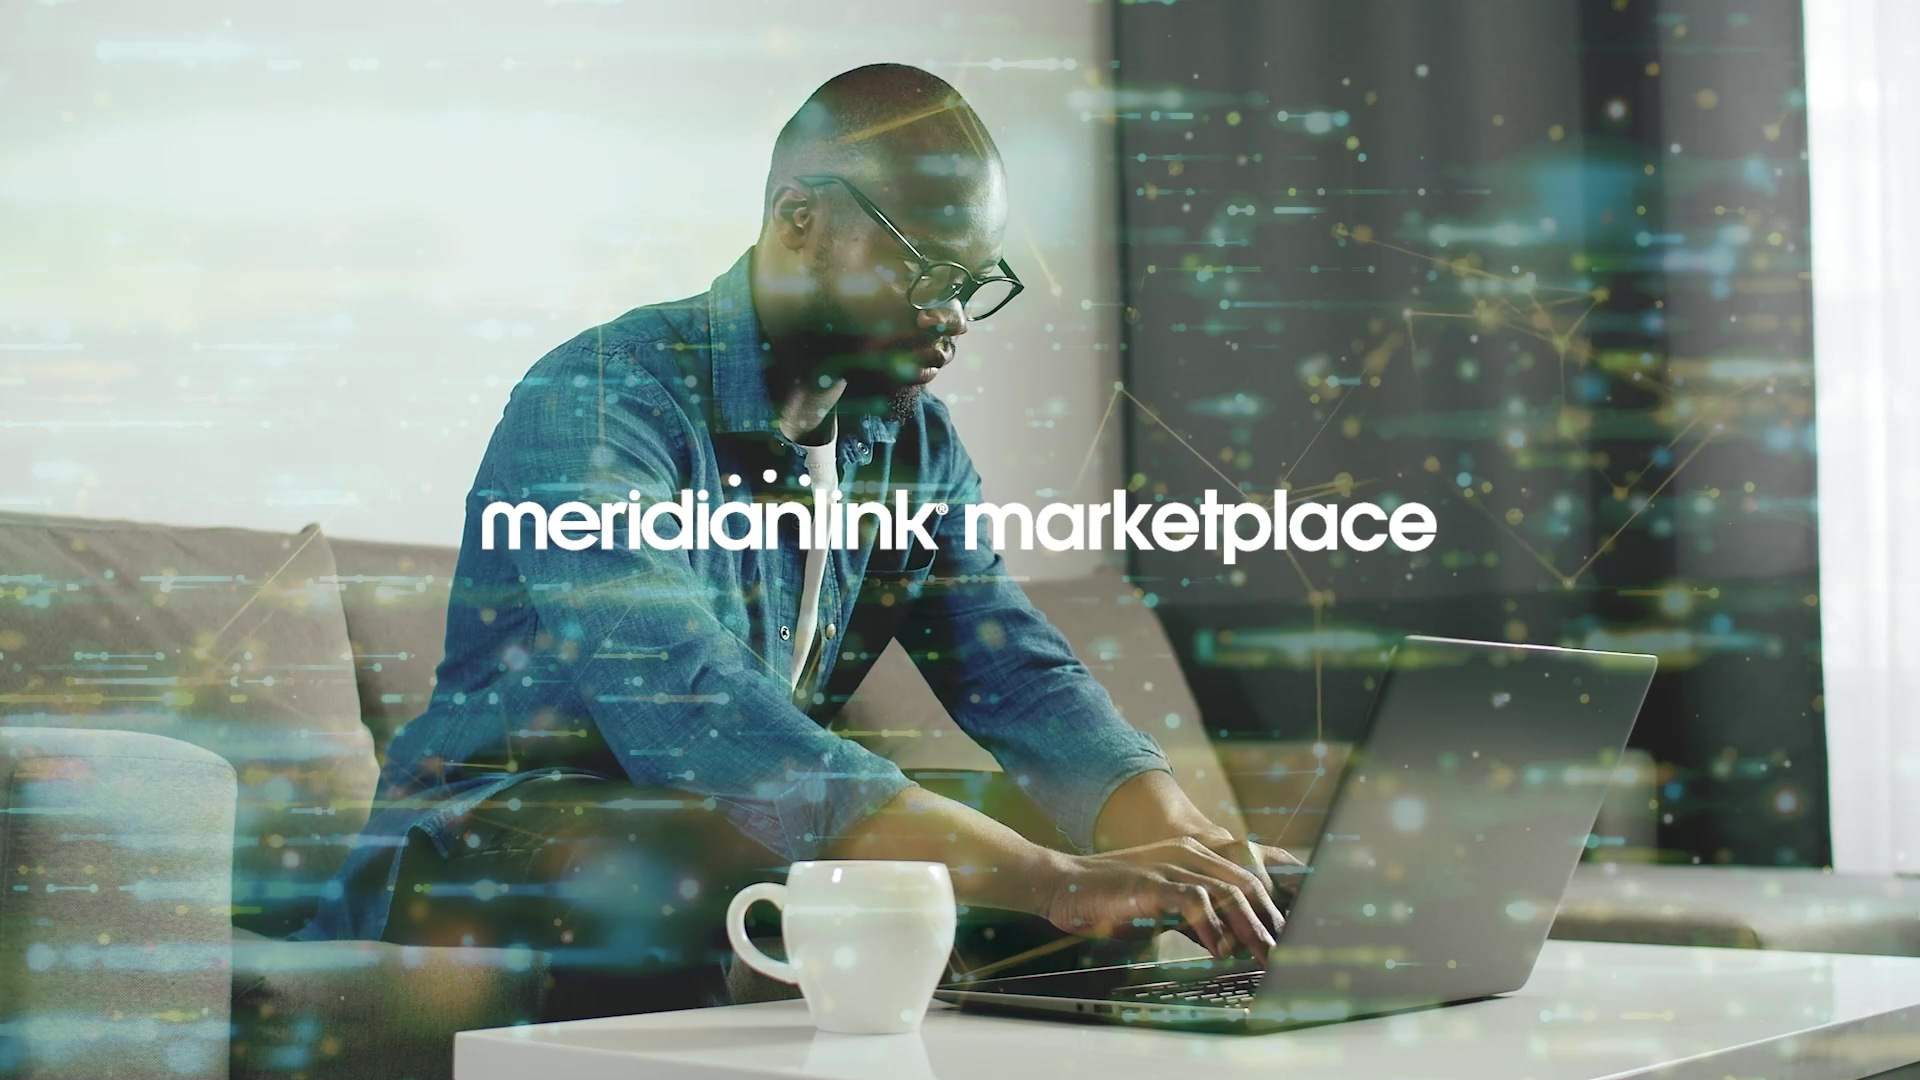 MeridianLink Marketplace